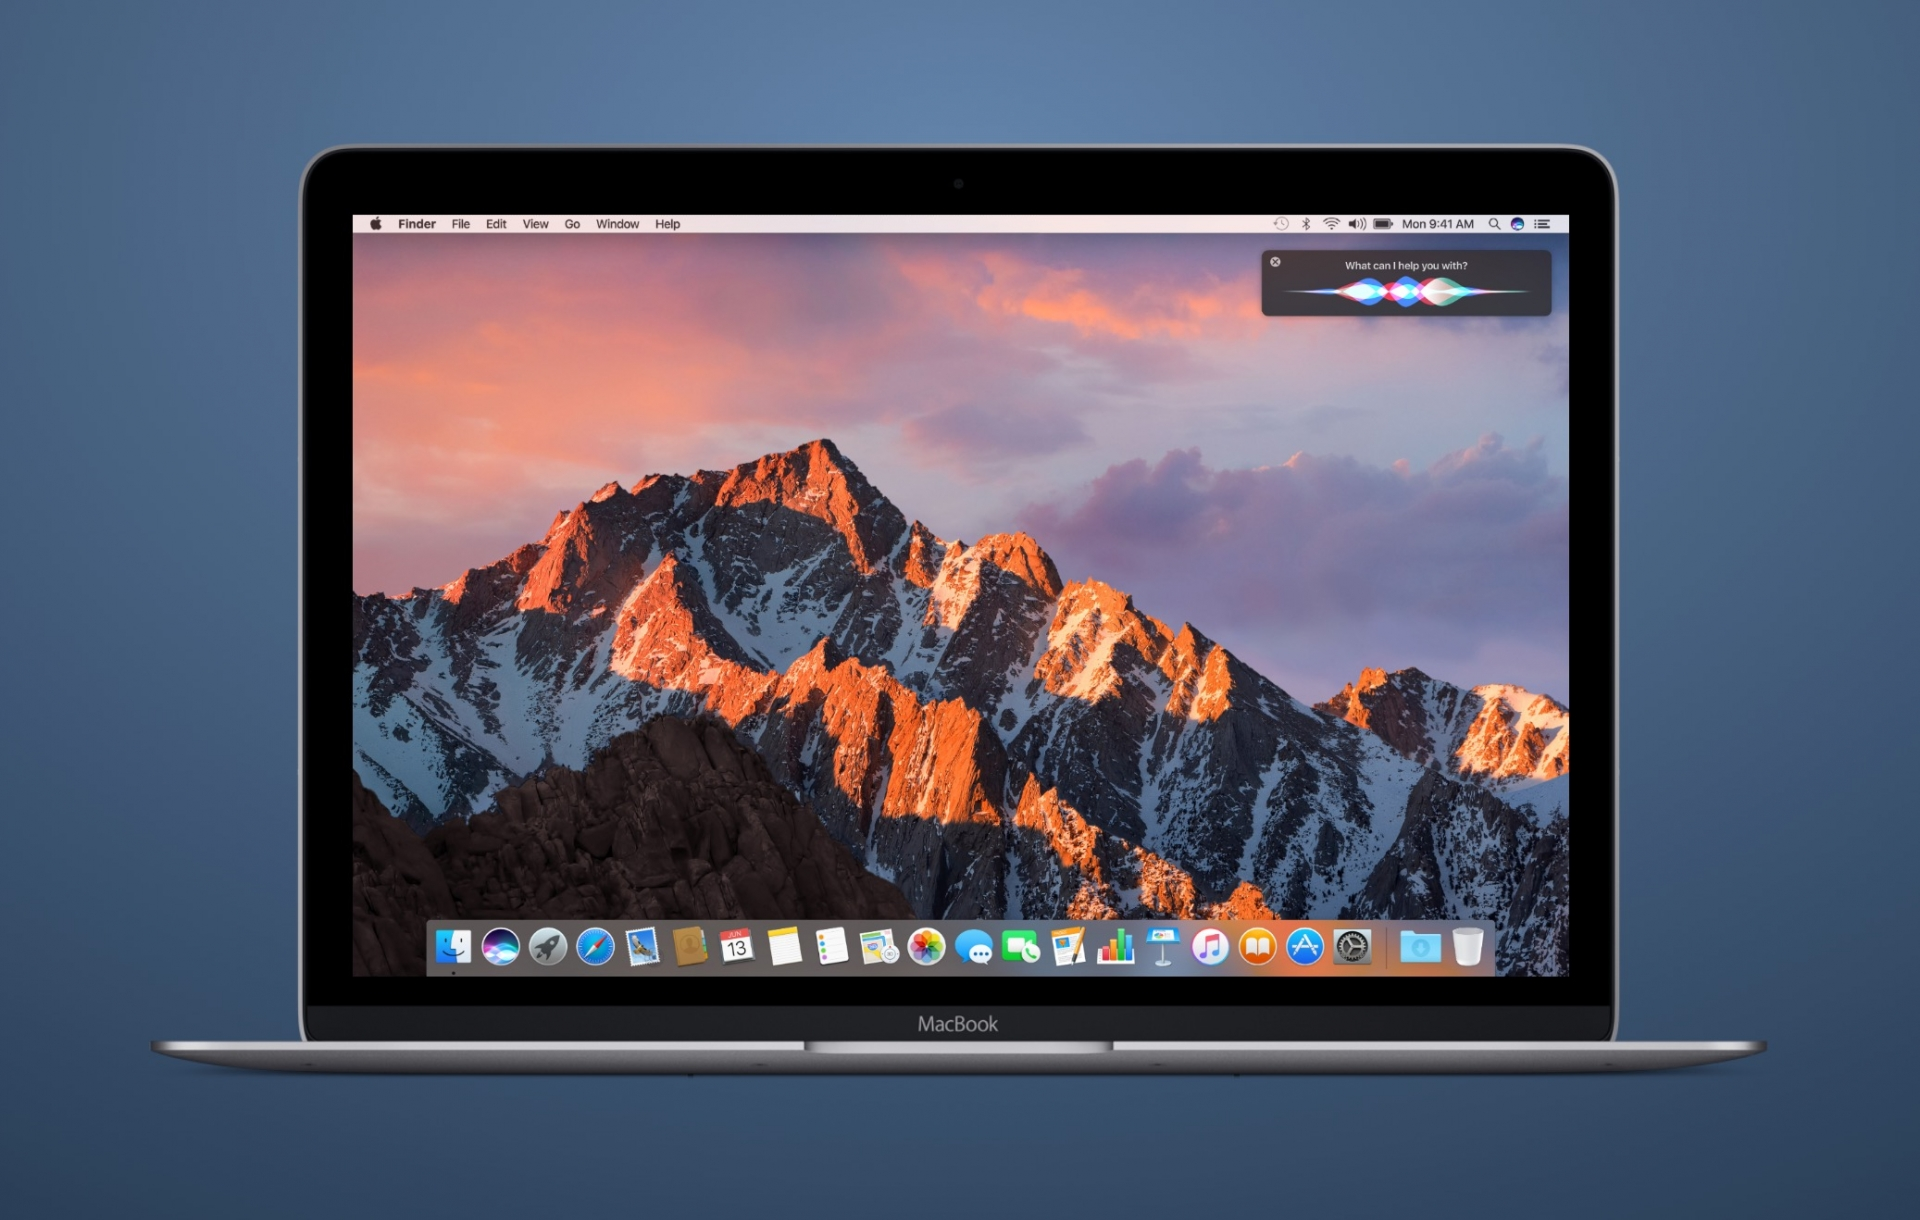 Apple Released beta 3 of macOS Sierra 10.12.2, tvOS 10.1, watchOS 3.1.1 and Xcode 8.2